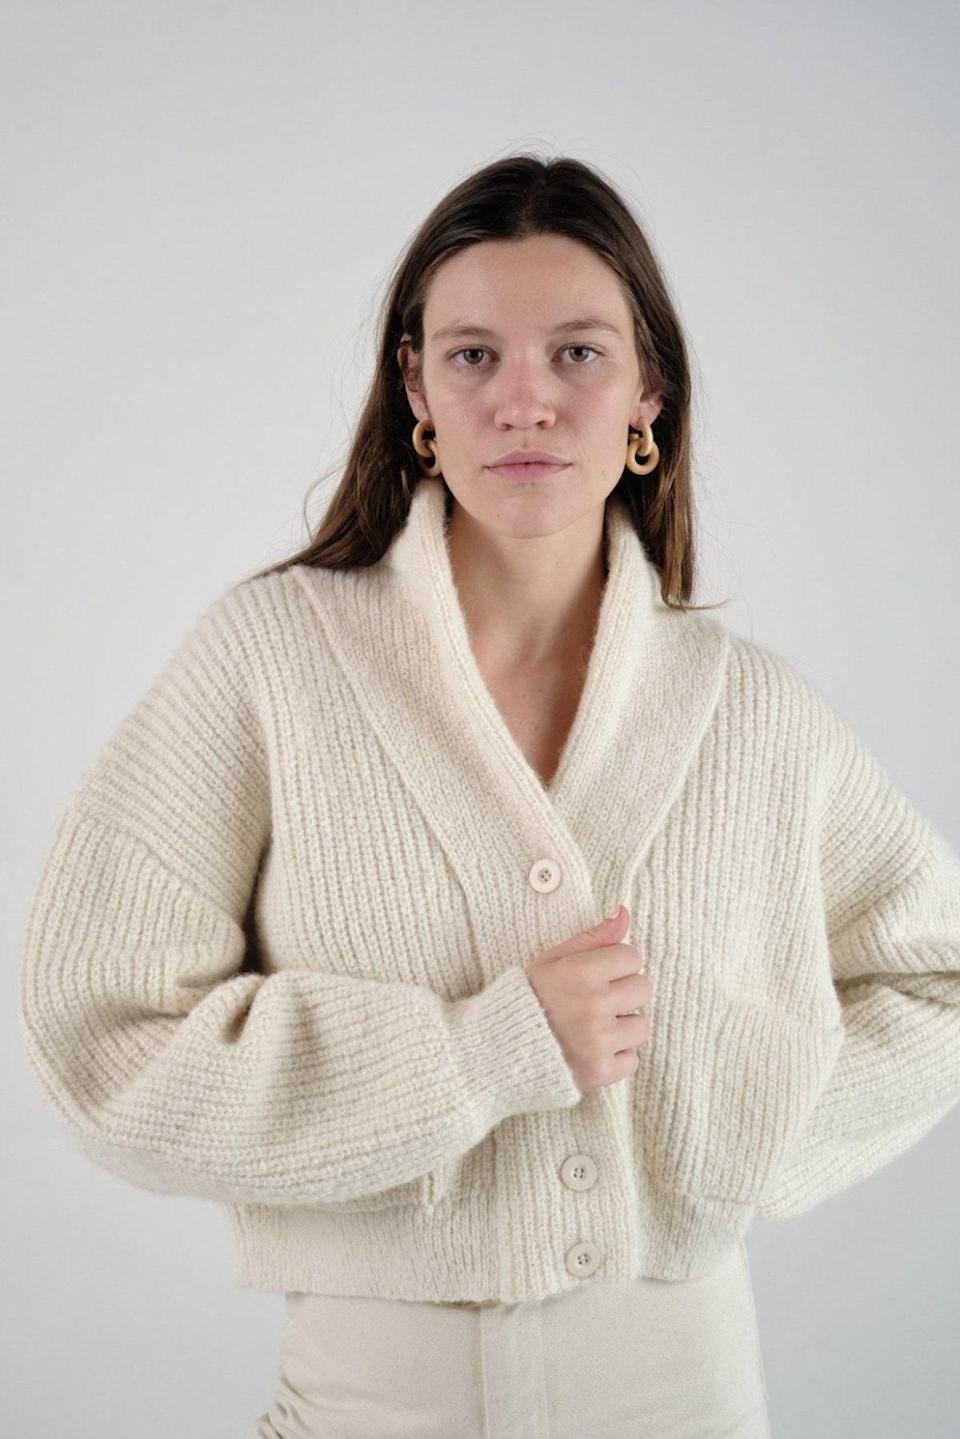 """Get ready to envelop yourself in every inch of this cashmere sweater, featuring drop shoulders and a shawl collar that's practically made for snuggling. $298, Ozma of California. <a href=""""https://ozmaofcalifornia.com/products/sloan-cardigan-caravelli-cream"""" rel=""""nofollow noopener"""" target=""""_blank"""" data-ylk=""""slk:Get it now!"""" class=""""link rapid-noclick-resp"""">Get it now!</a>"""